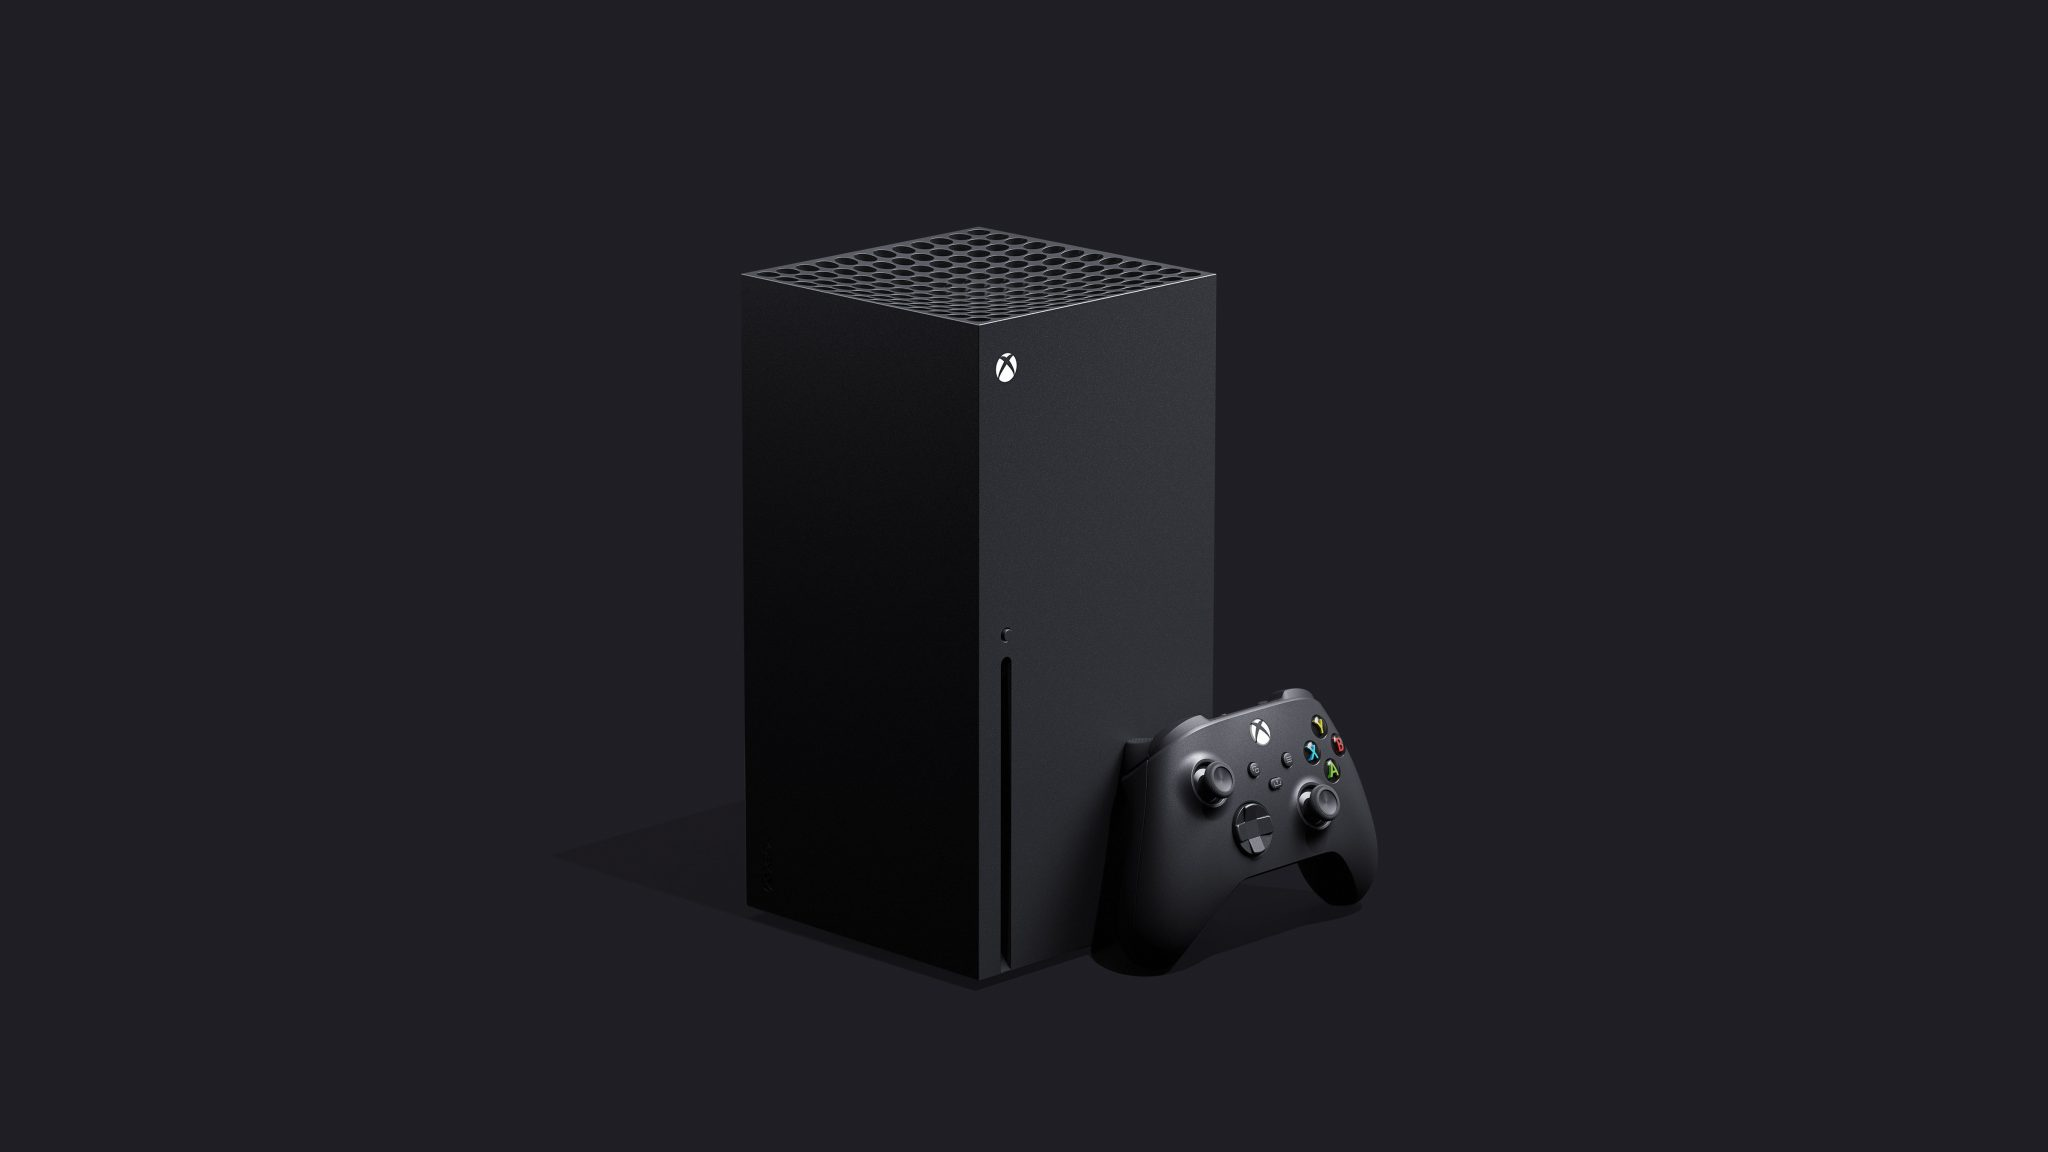 Xbox Series X and Xbox Series S — What We Know So Far About Microsoft's Next-Gen Consoles